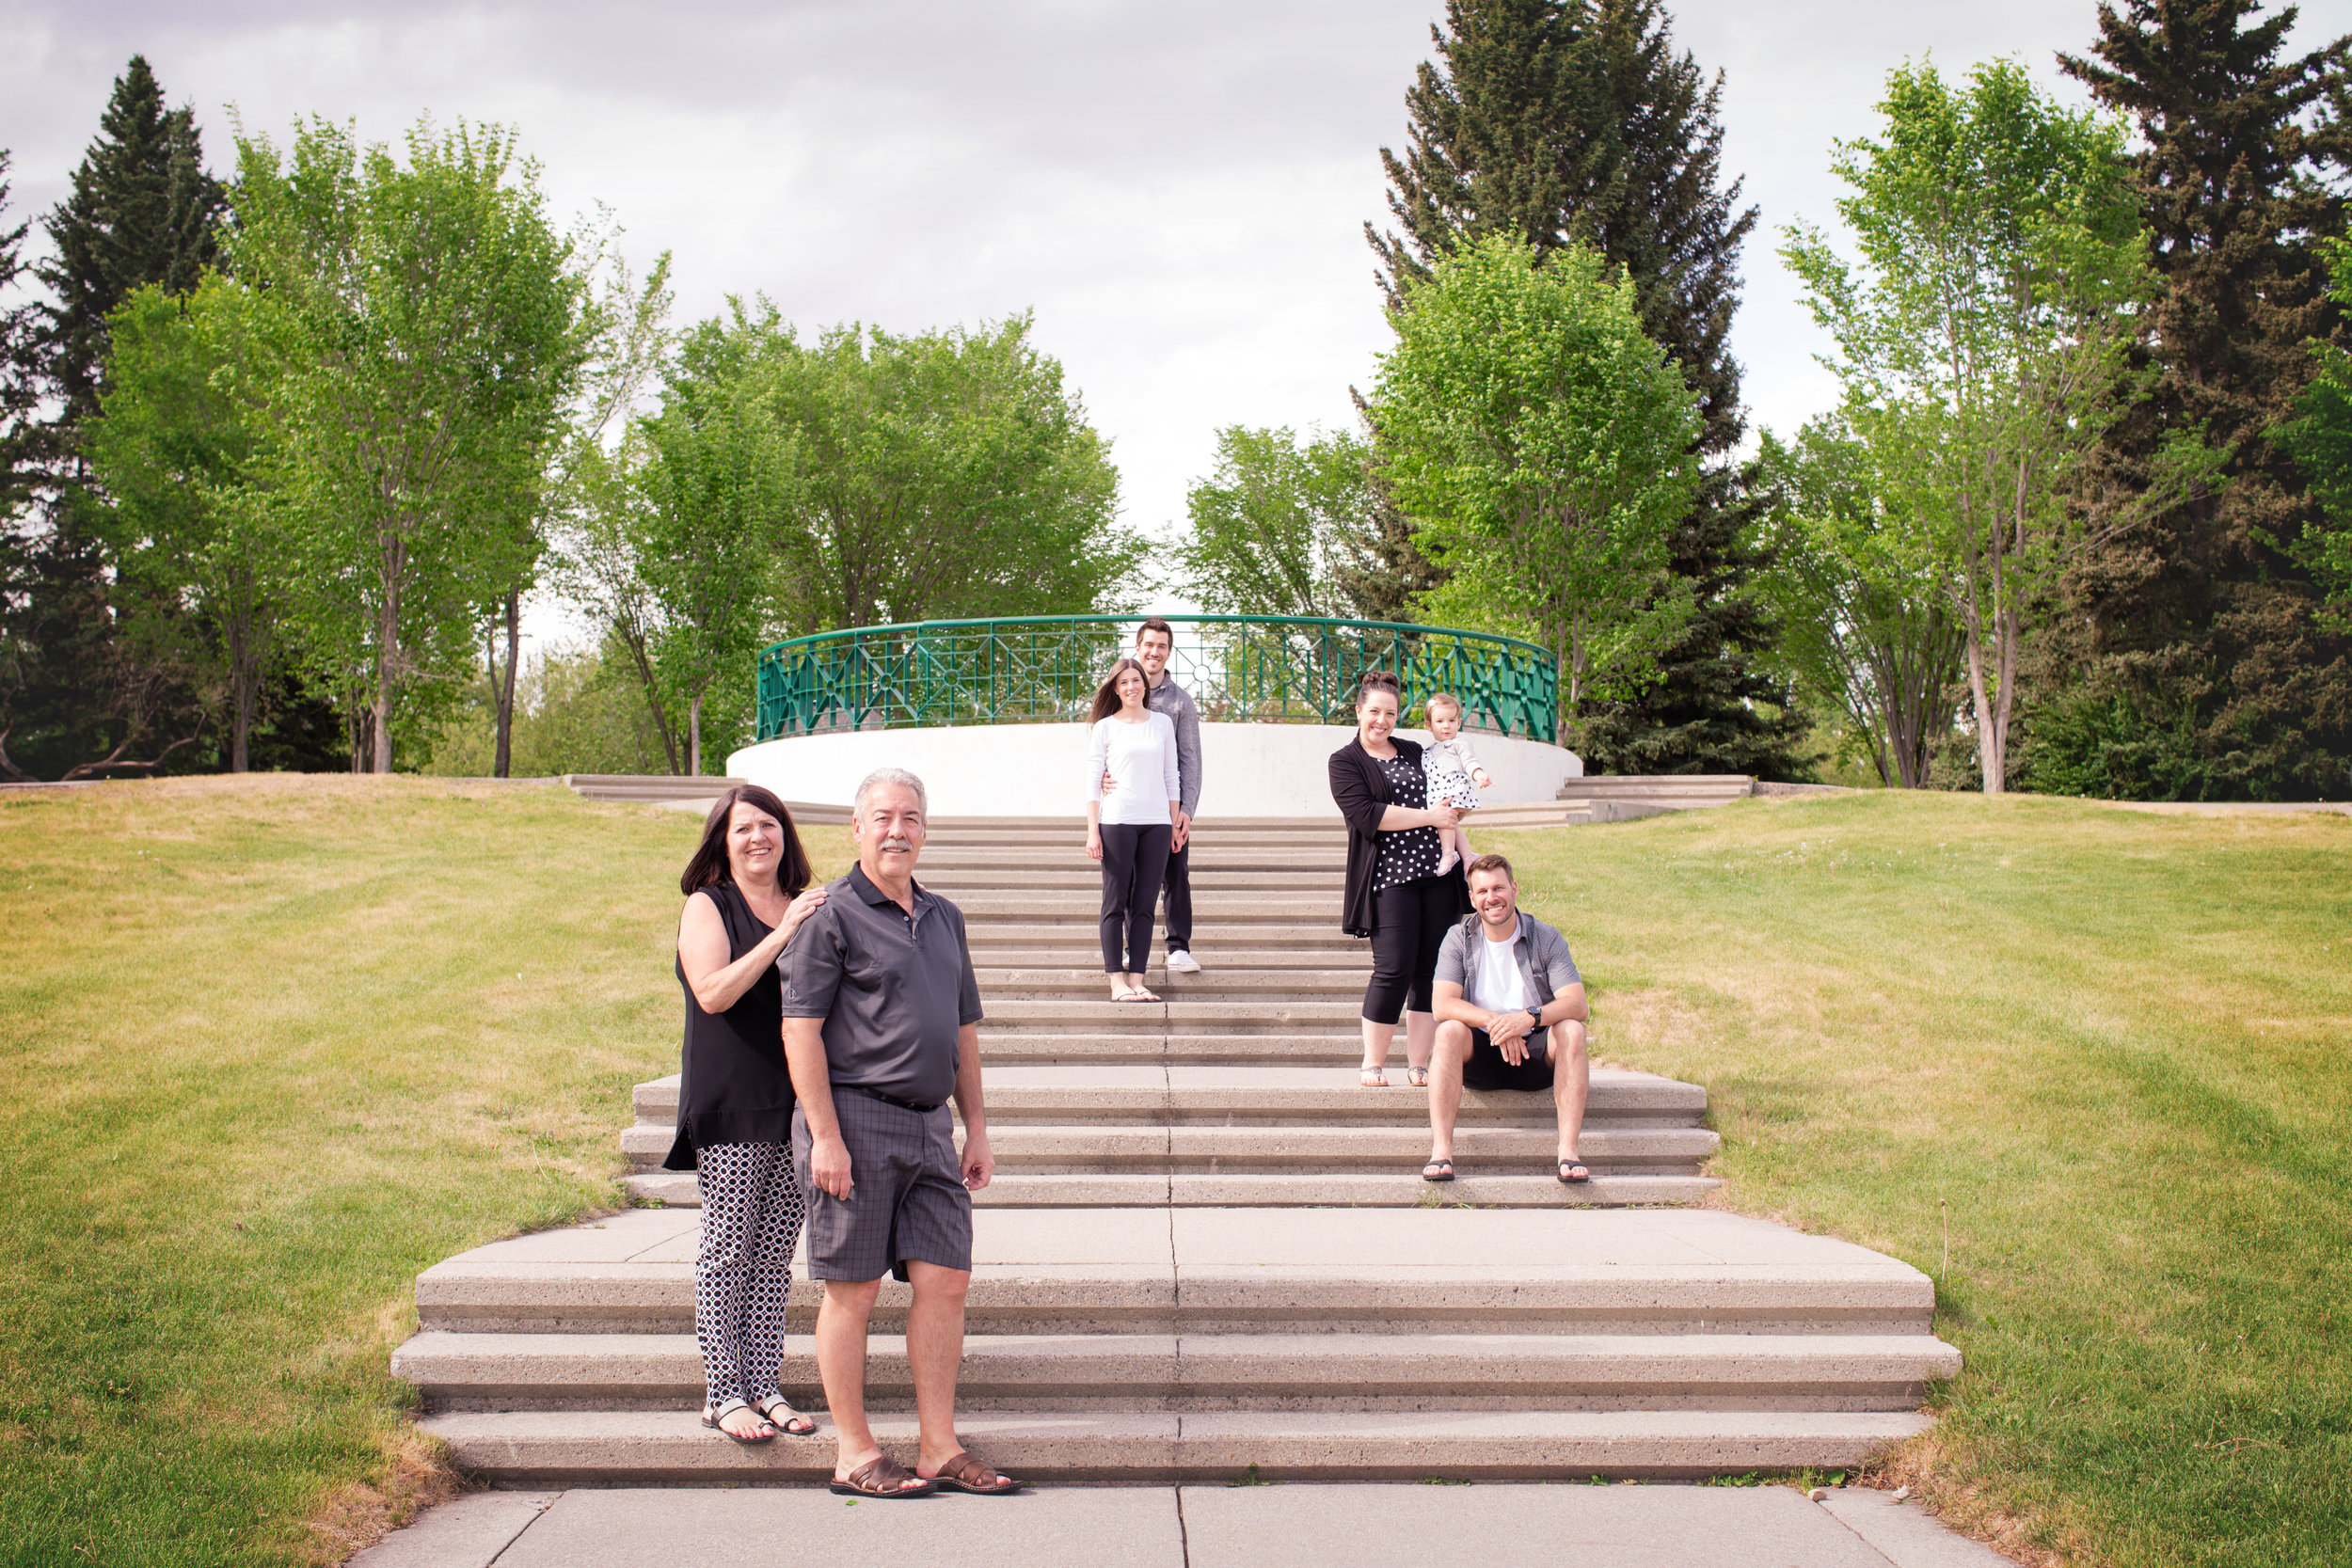 Family of 7 divided by inner smaller families standing on the stairs in Baker's park. Calgary photographer. Milashka Photography